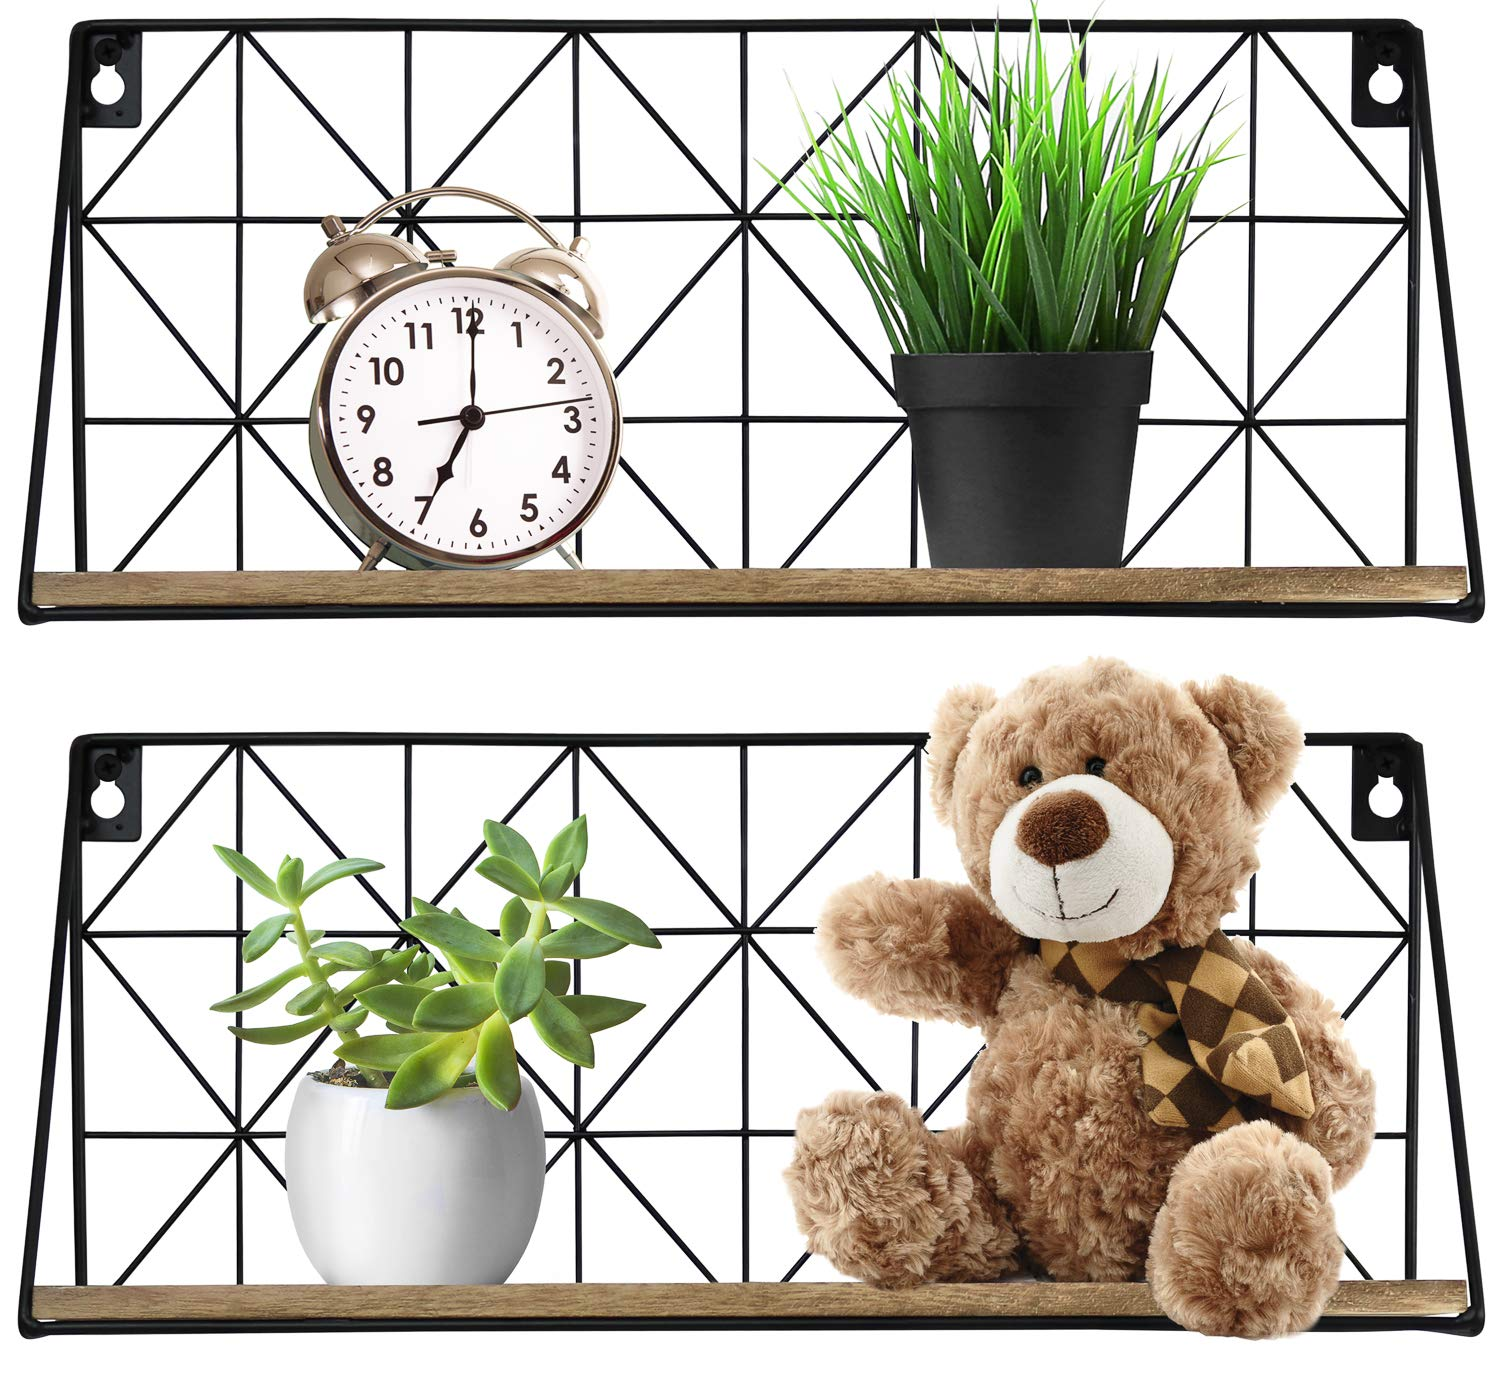 Greenco Geometric Mounted Floating, Home Decor, Metal Wire and Rustic Wood Wall Storage Shelves for Bedroom, Living Room, Bathroom, Kitchen, Office and More – Set of 2